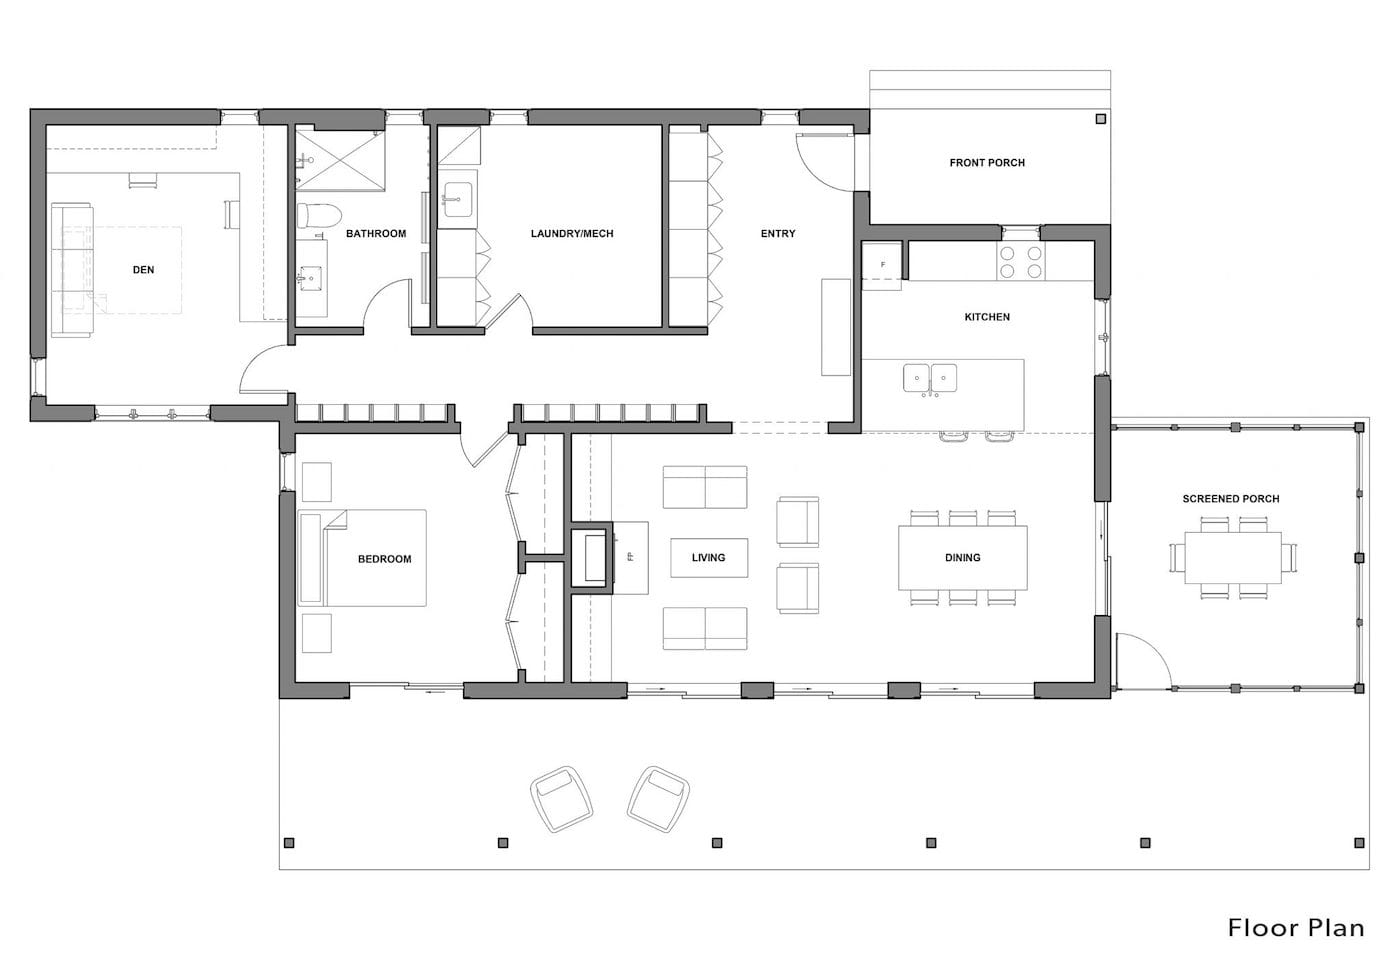 Solares Architecture Manitoulin Island off-grid house Floor-plan